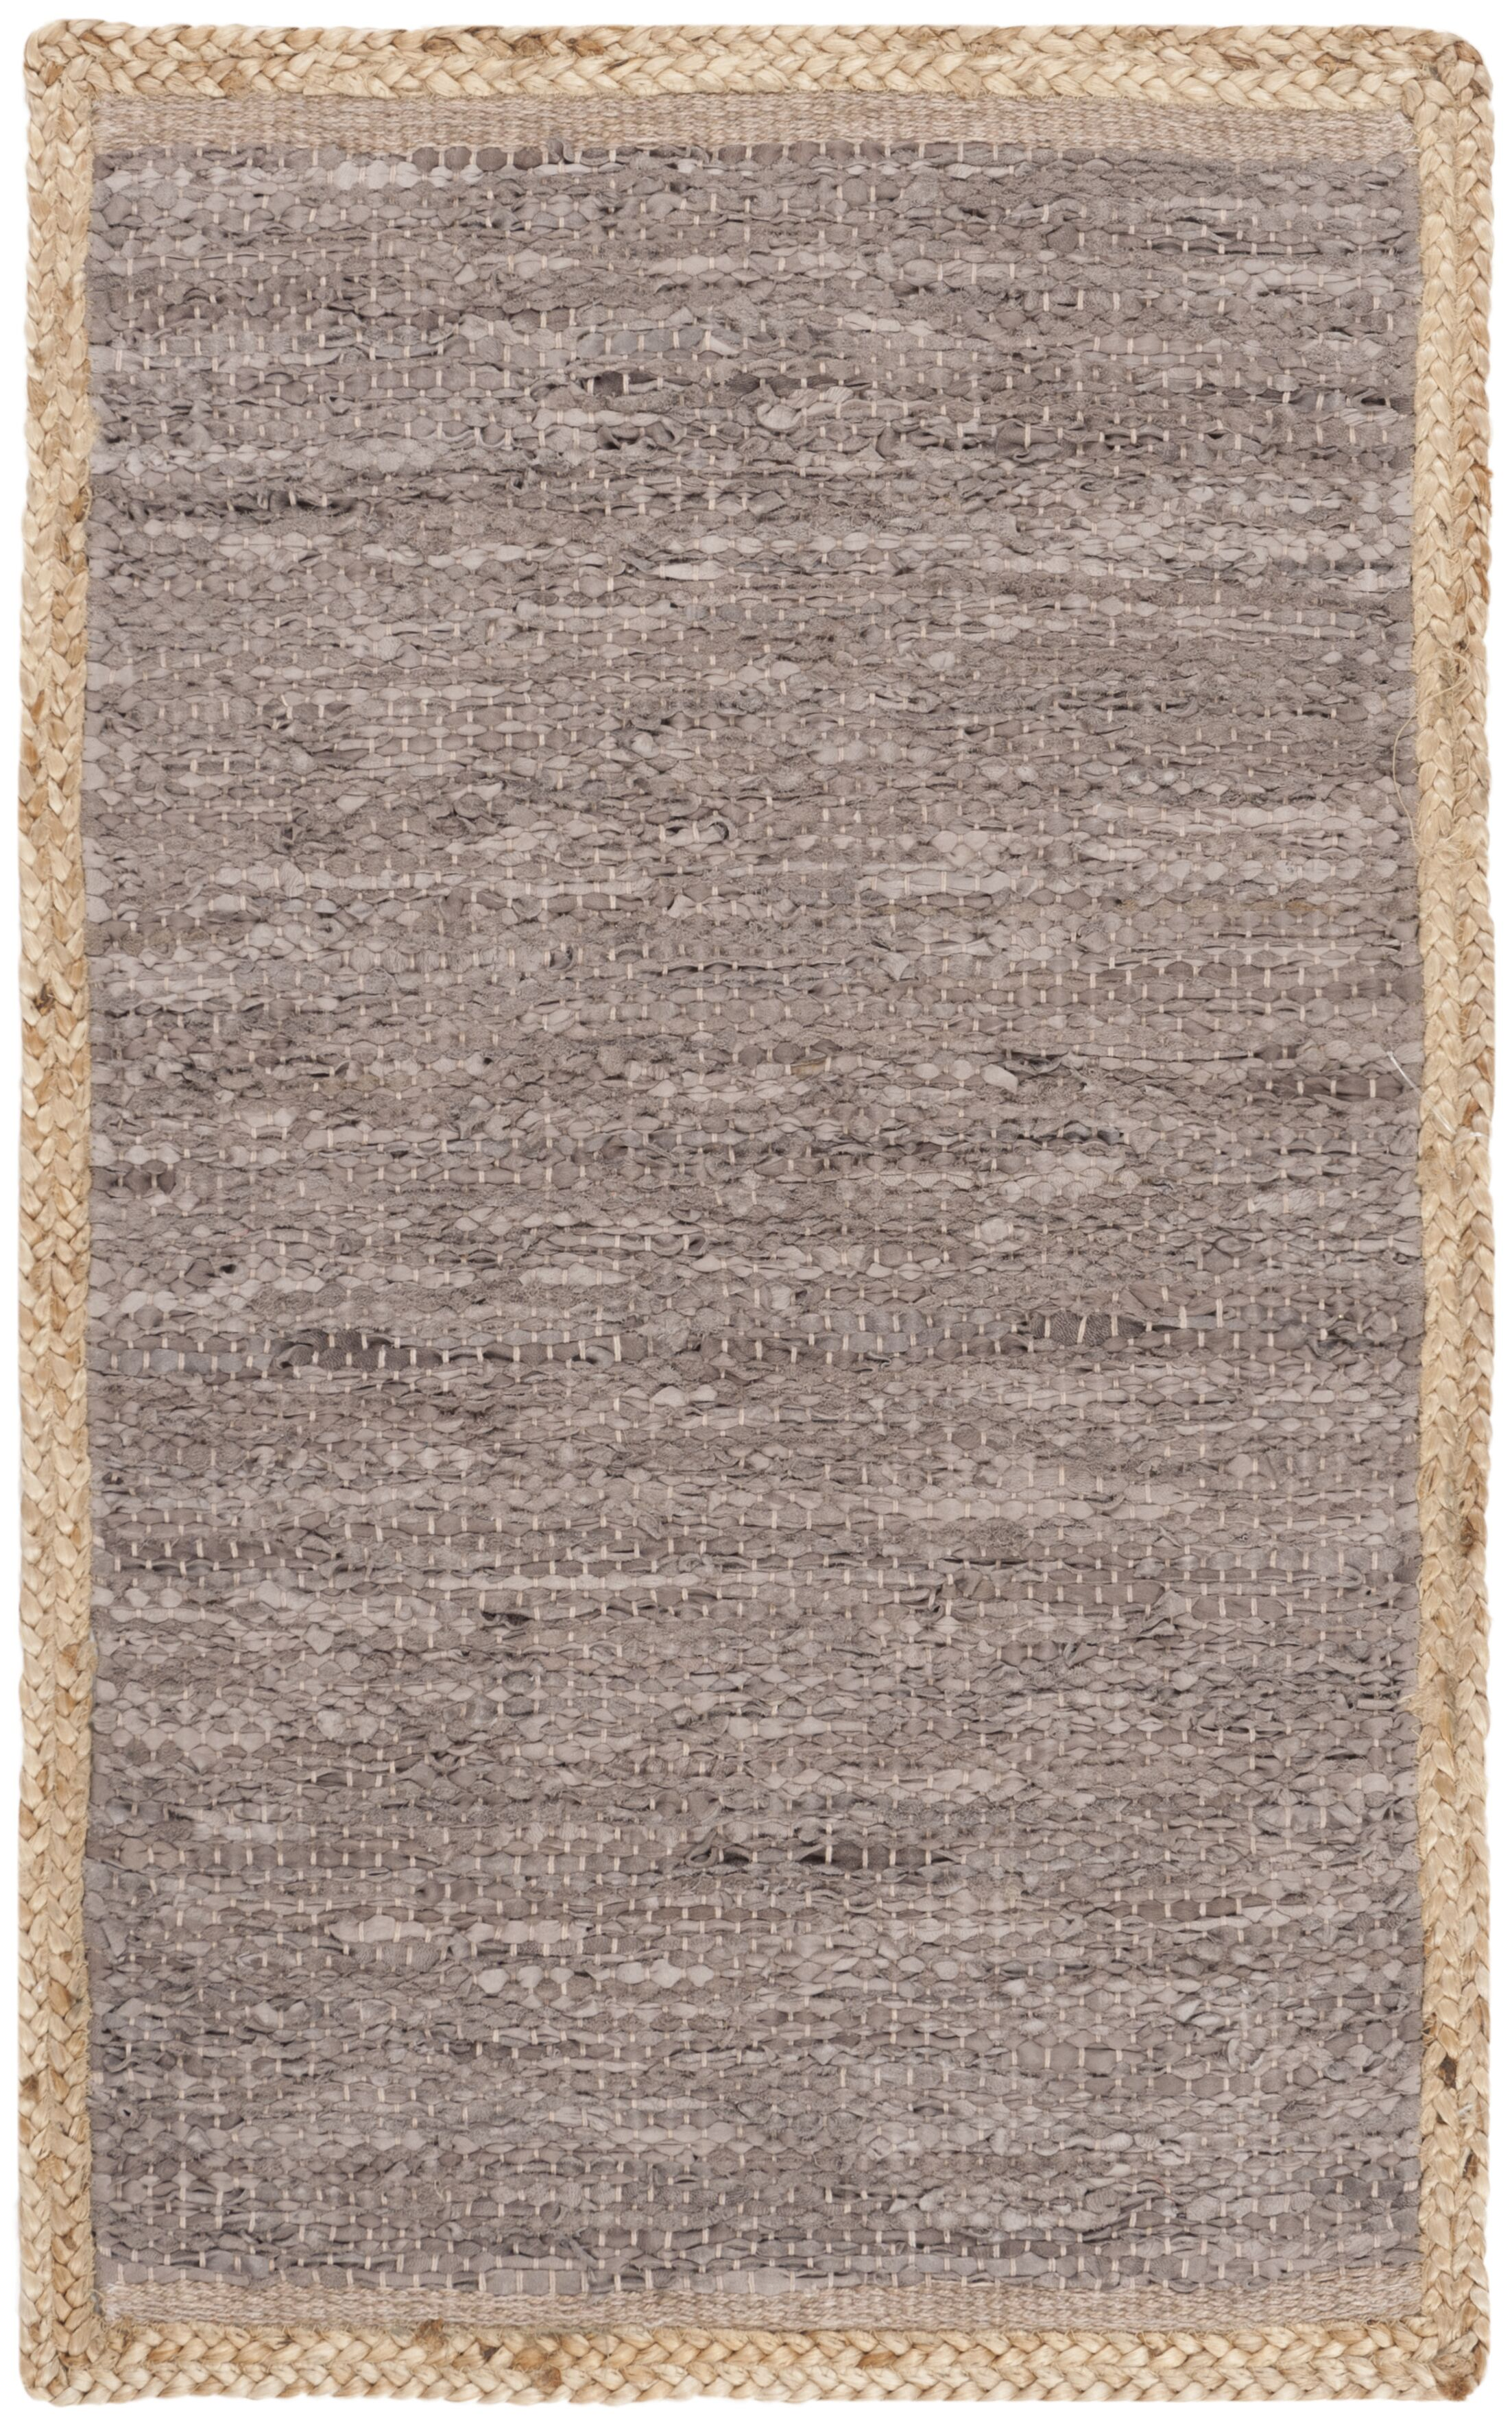 Church Hand-Woven Brown Area Rug Rug Size: Rectangle 8' x 10'